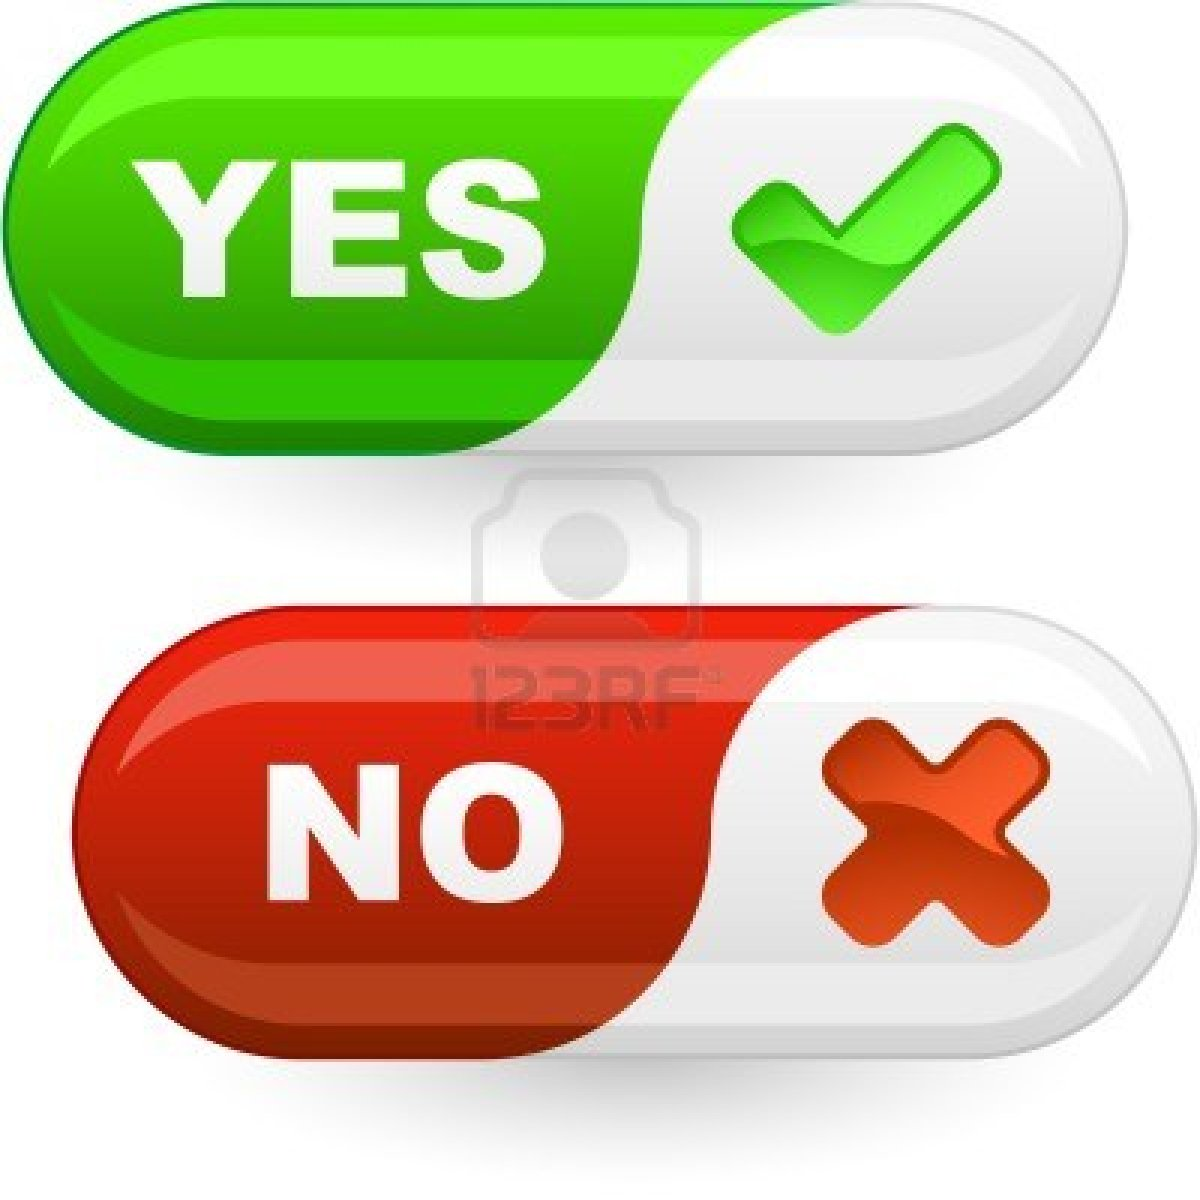 Yes No Png image #39561